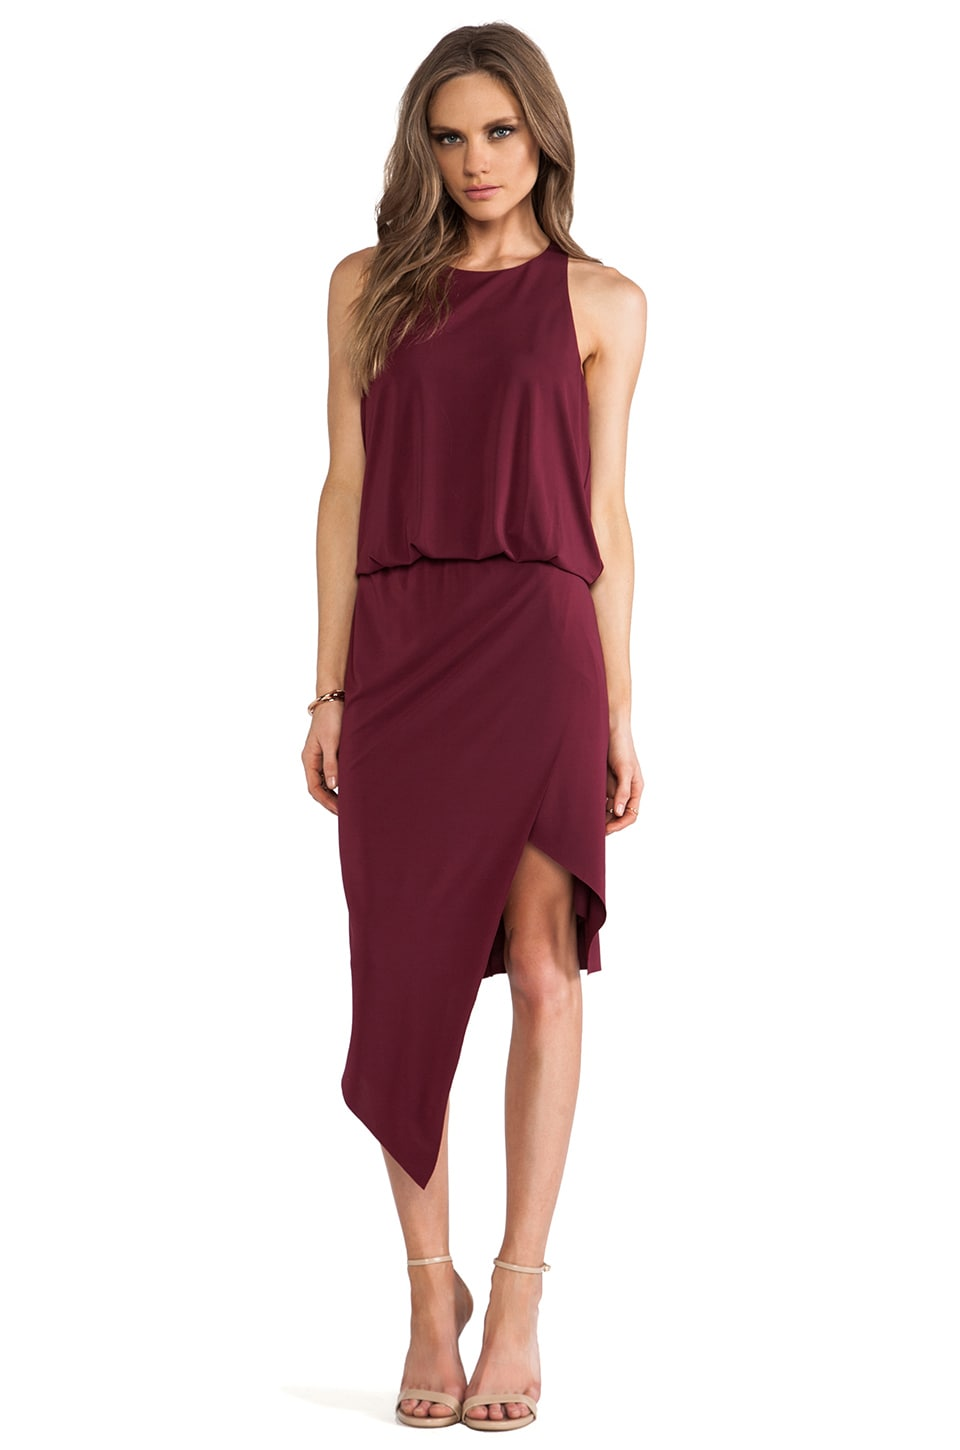 Elizabeth and James Rowan Dress in Garnet